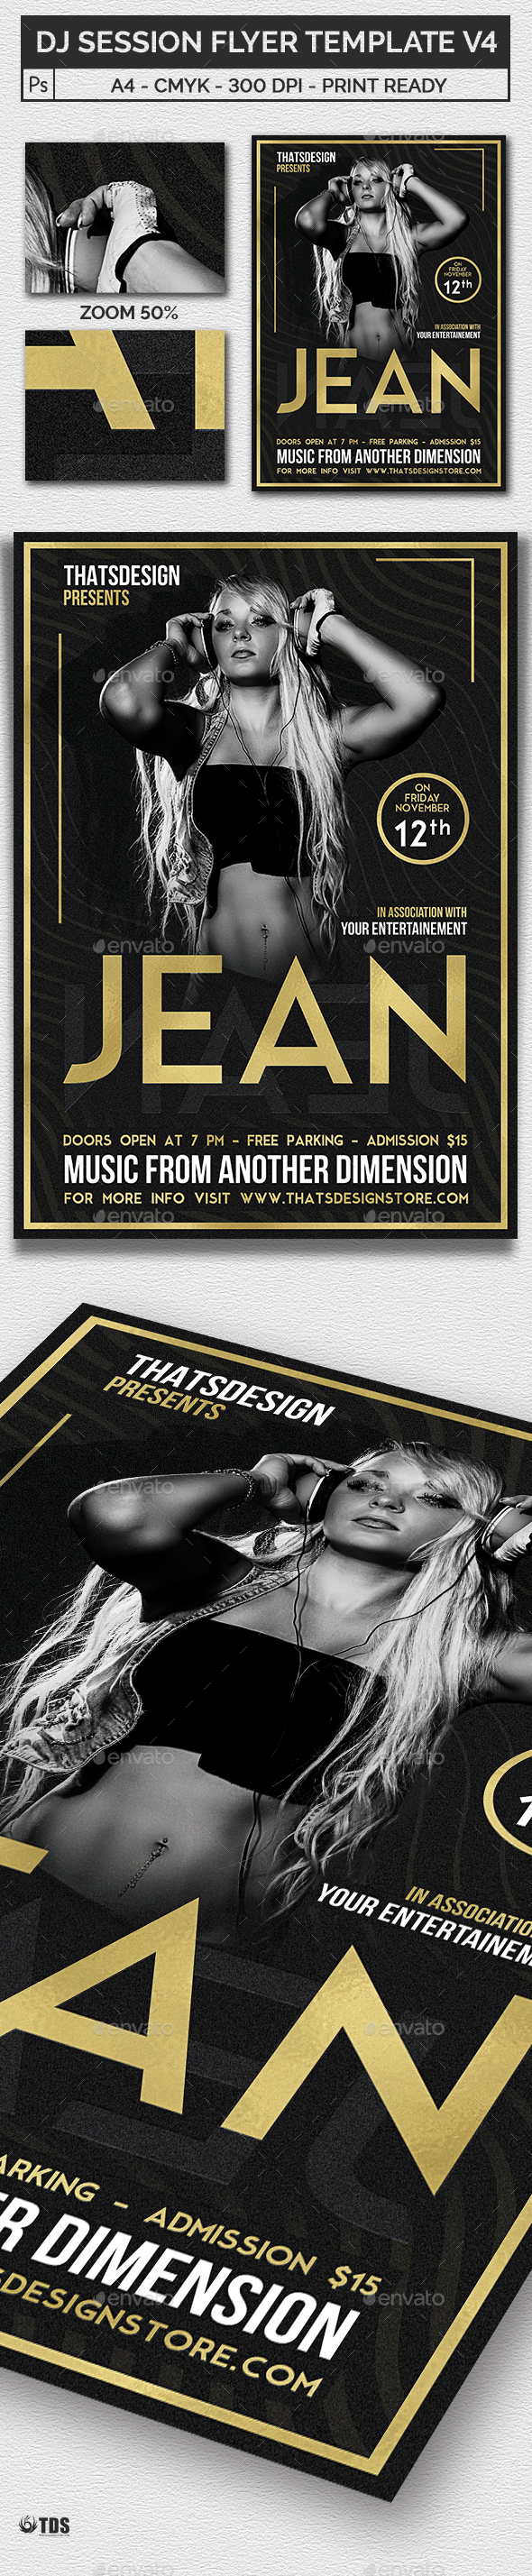 DJ Session Flyer Template V4 - Clubs & Parties Events